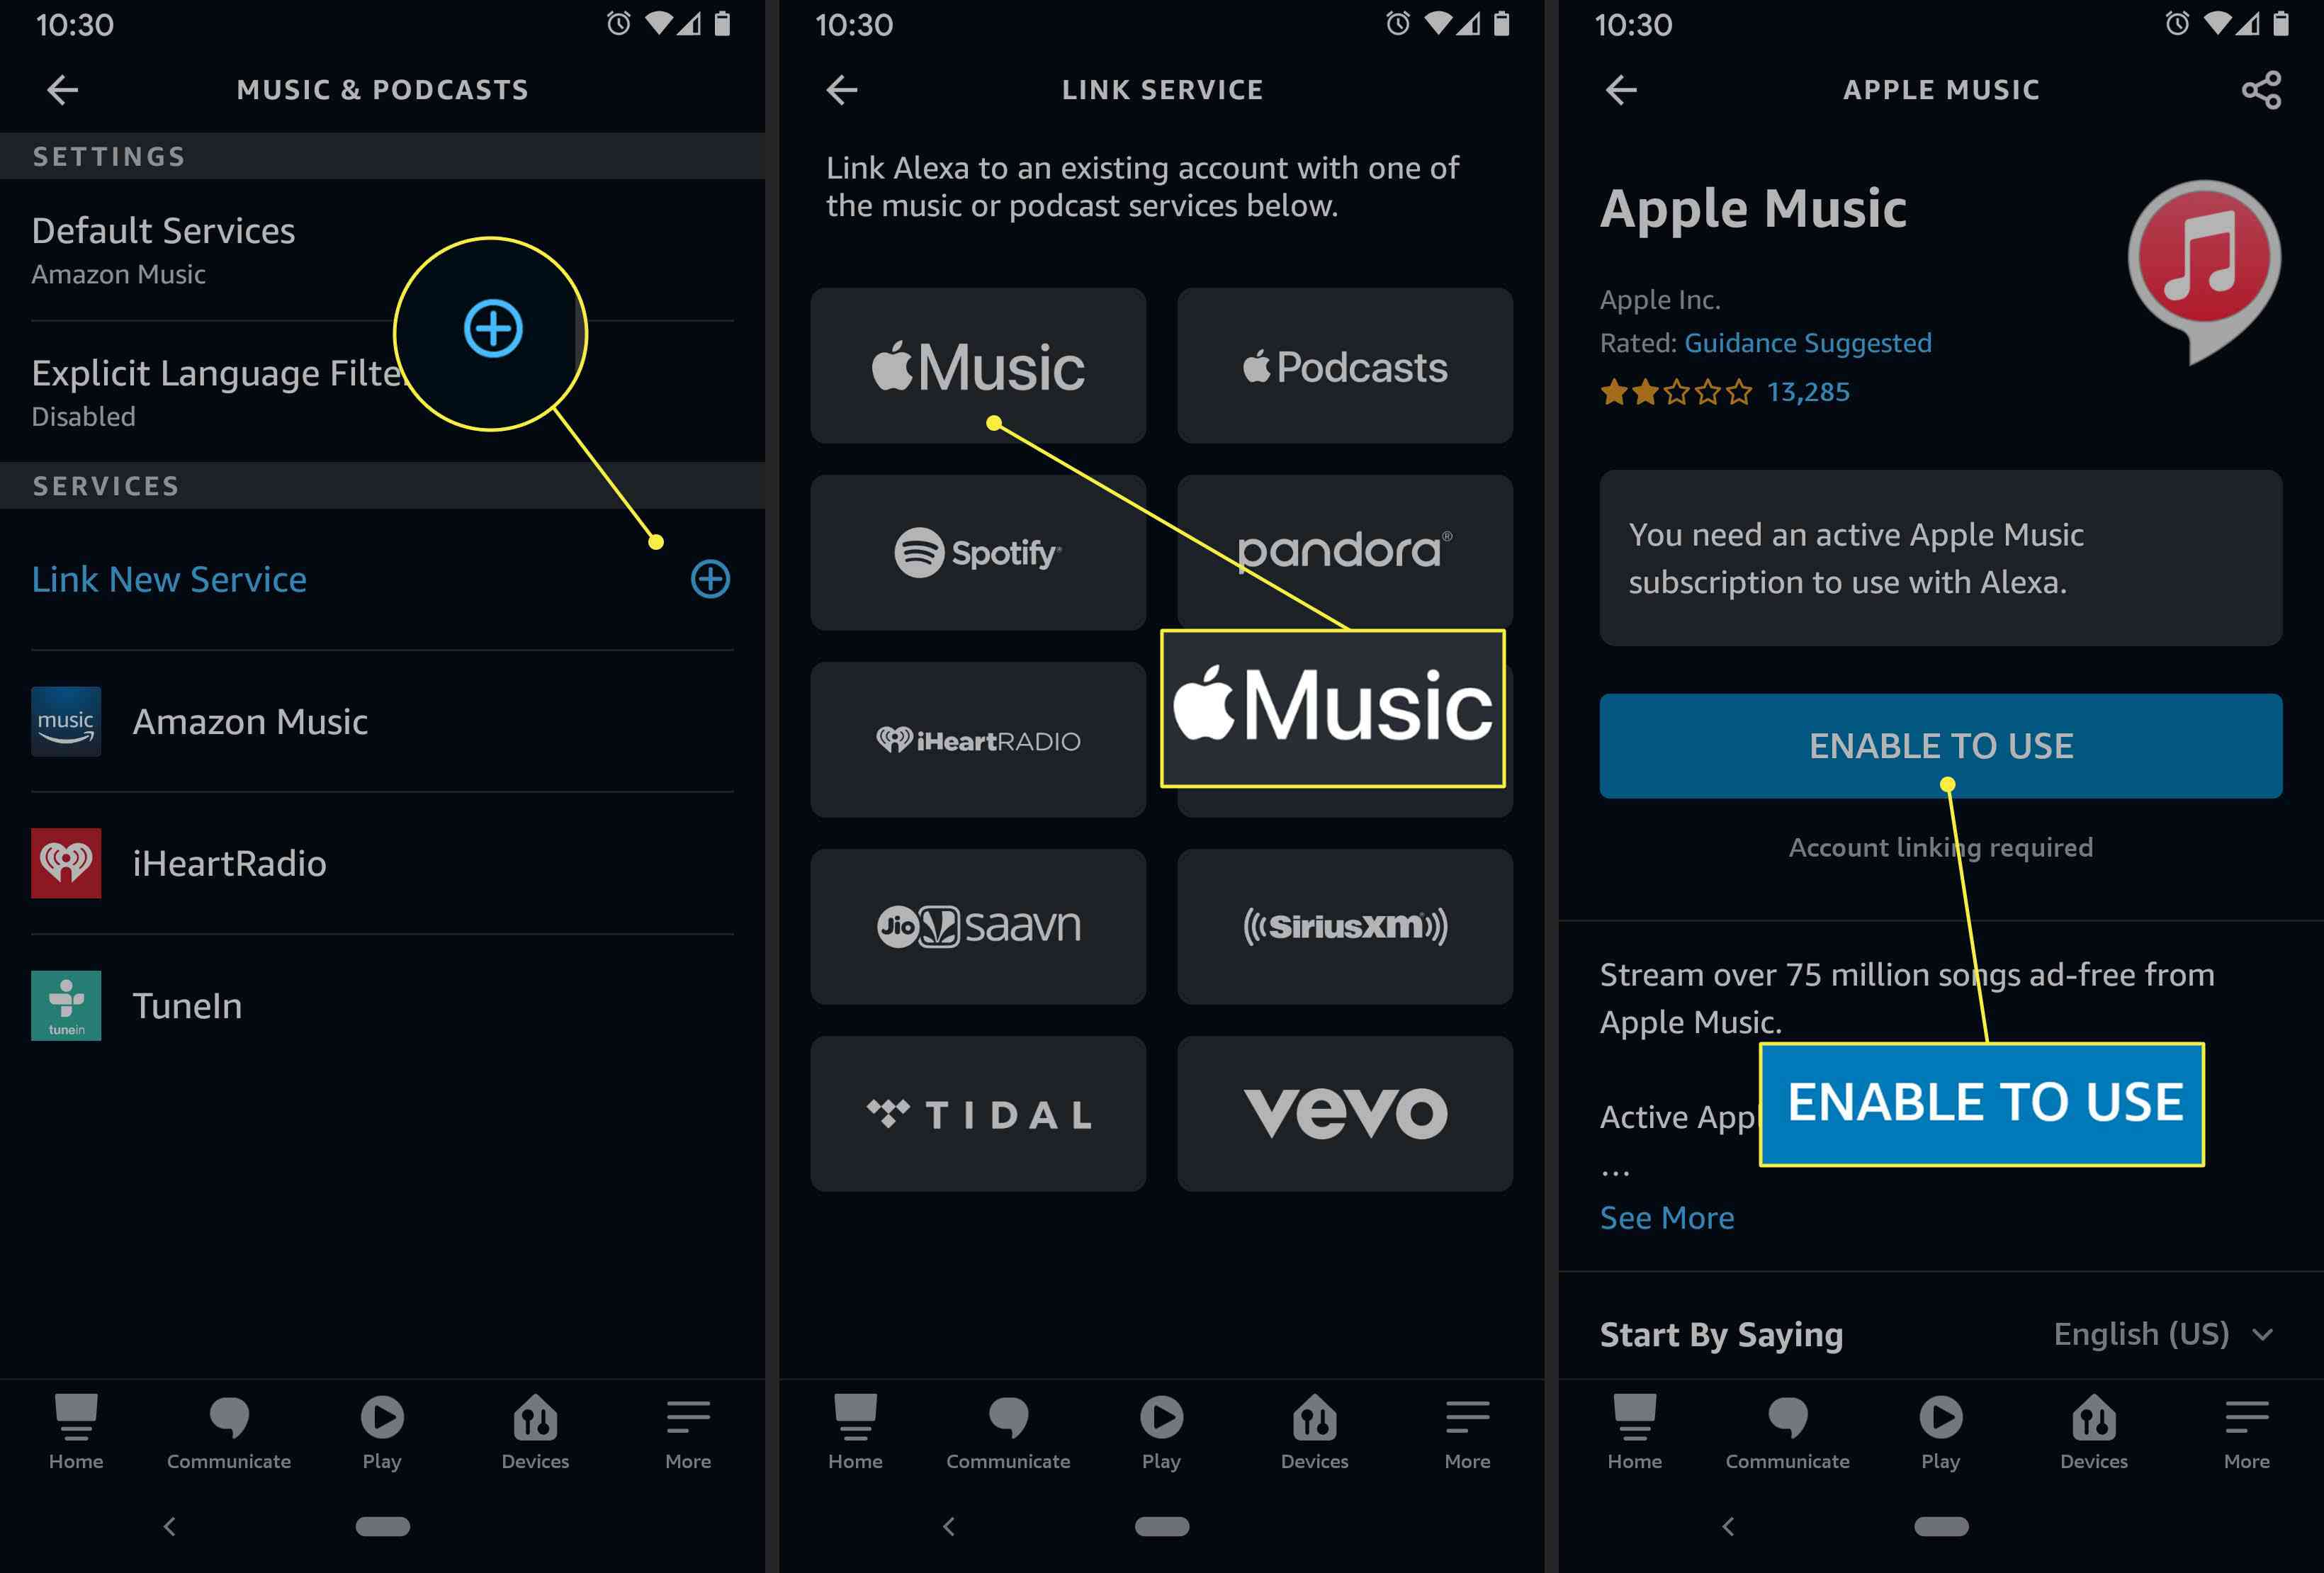 An Alexa user sets up Apple Music in the app's settings